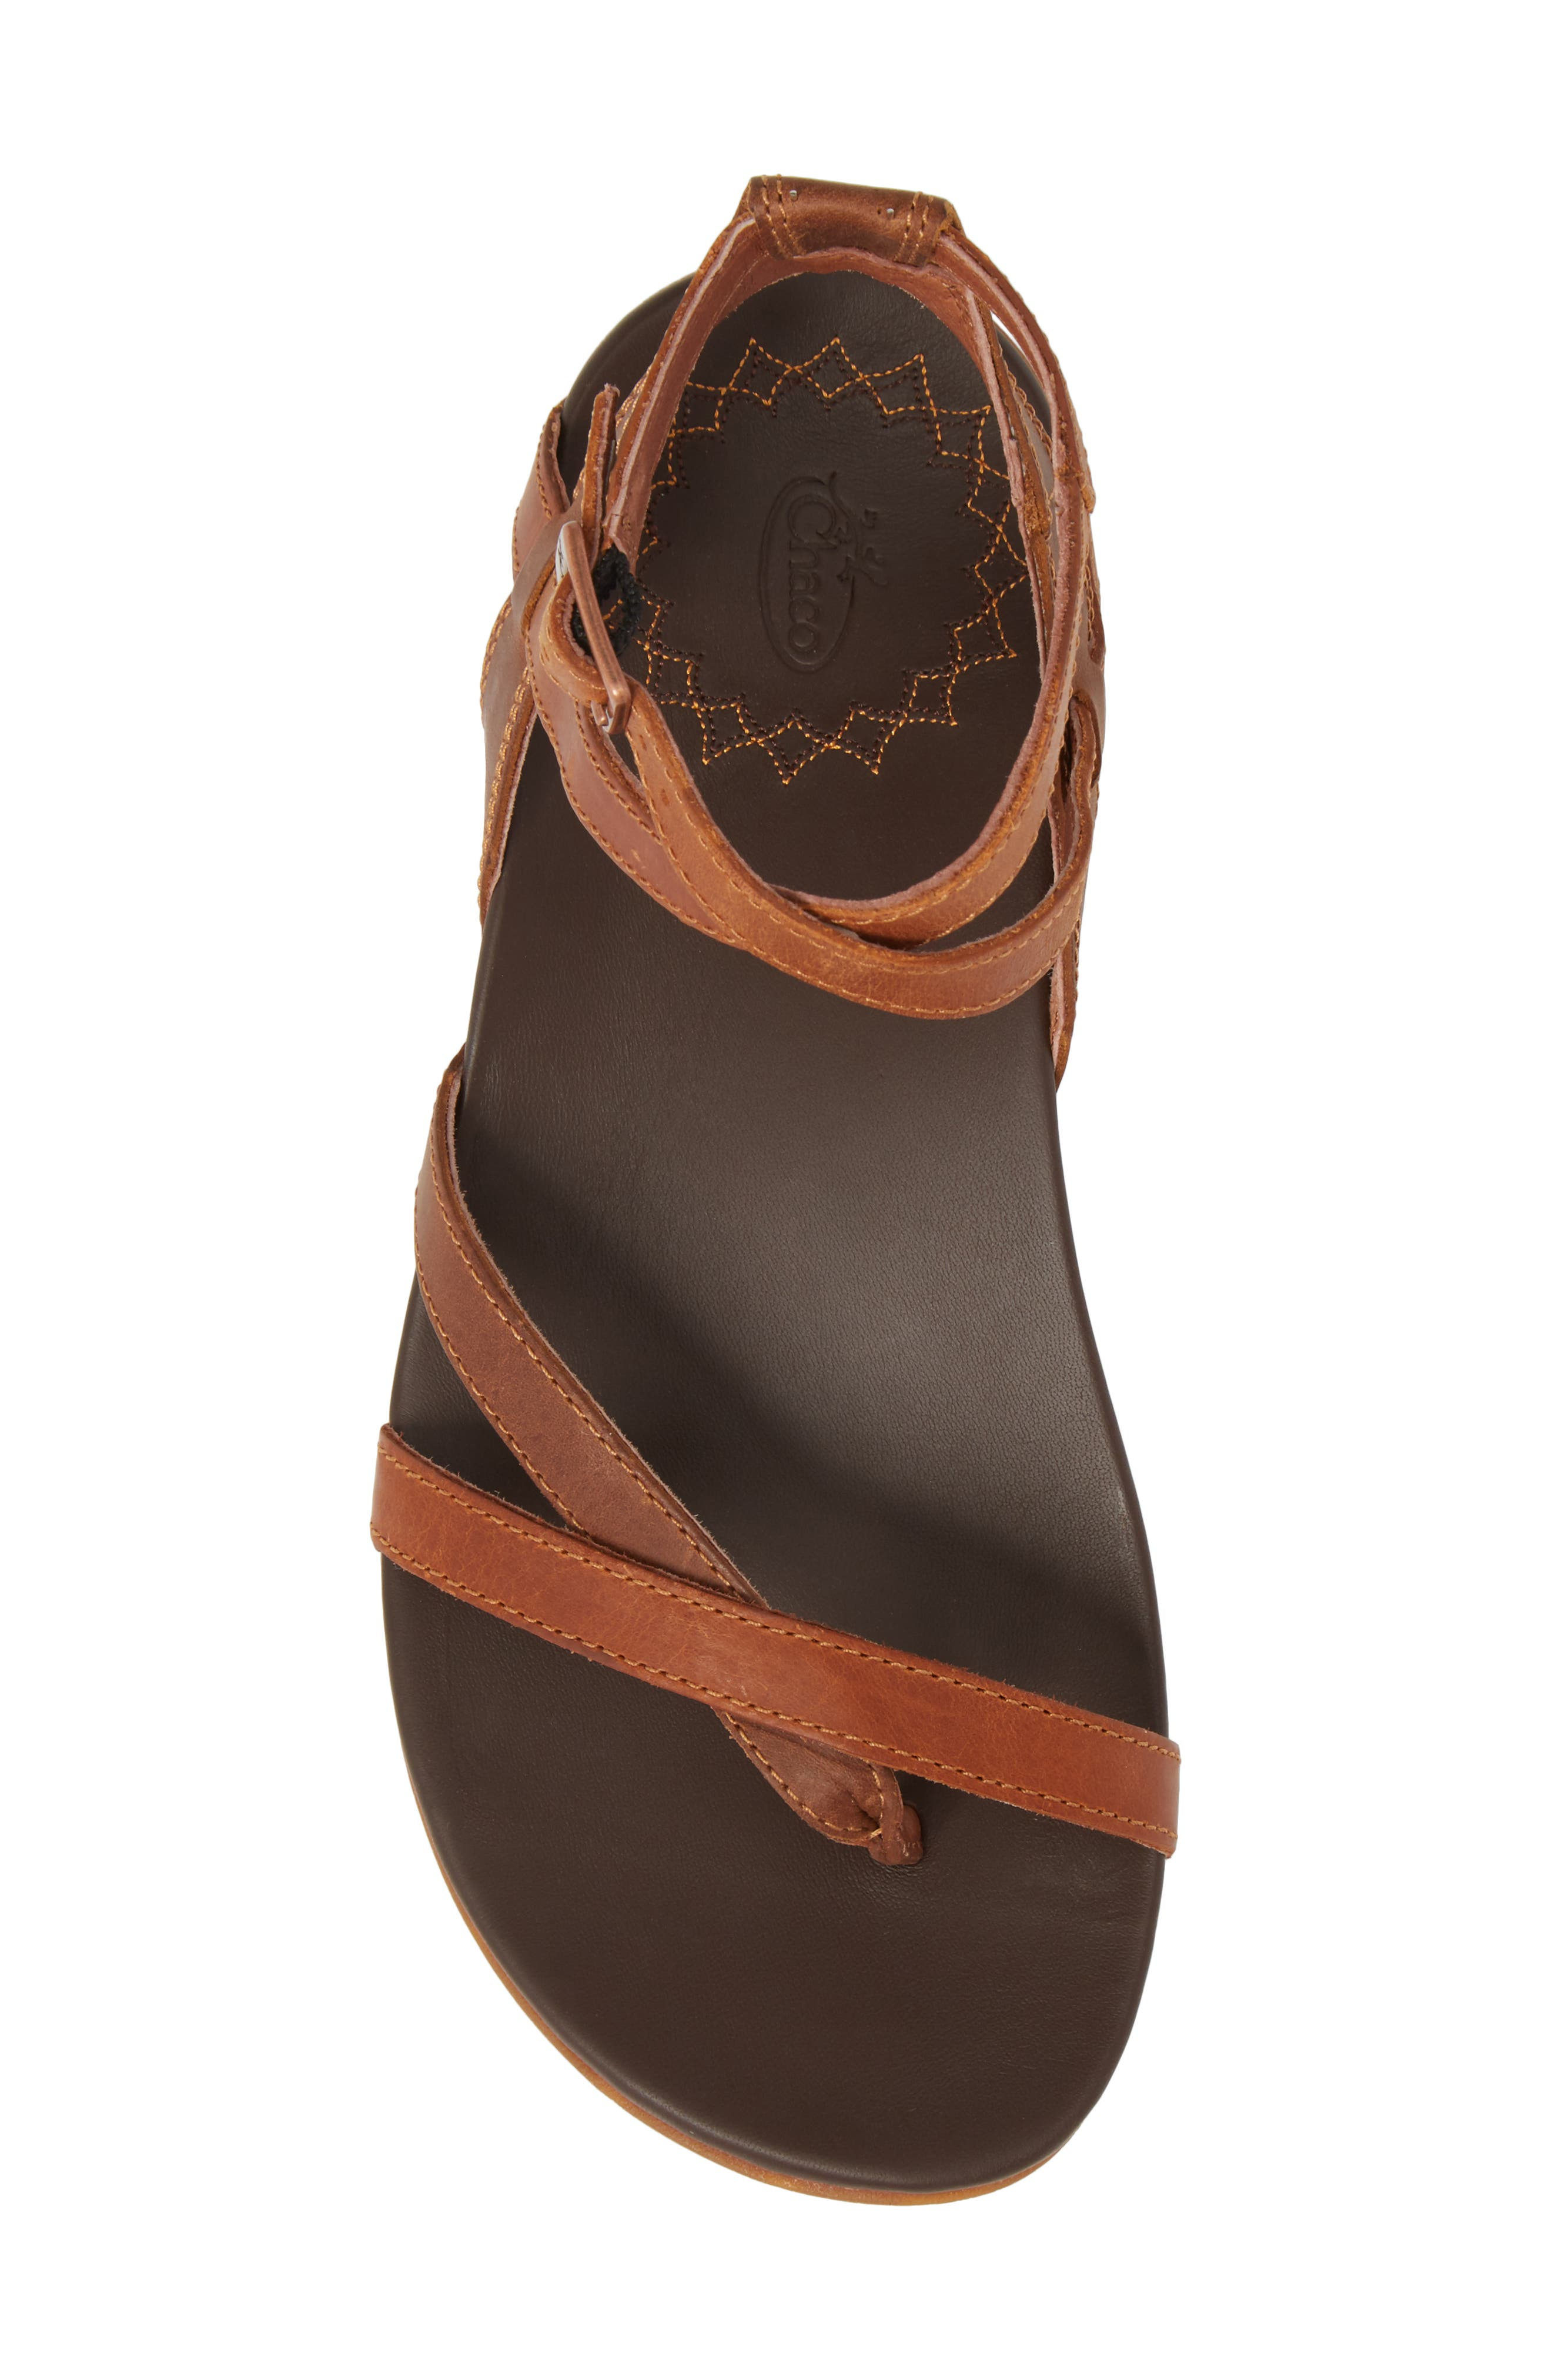 CHACO,                             Juniper Sandal,                             Alternate thumbnail 5, color,                             RUST LEATHER